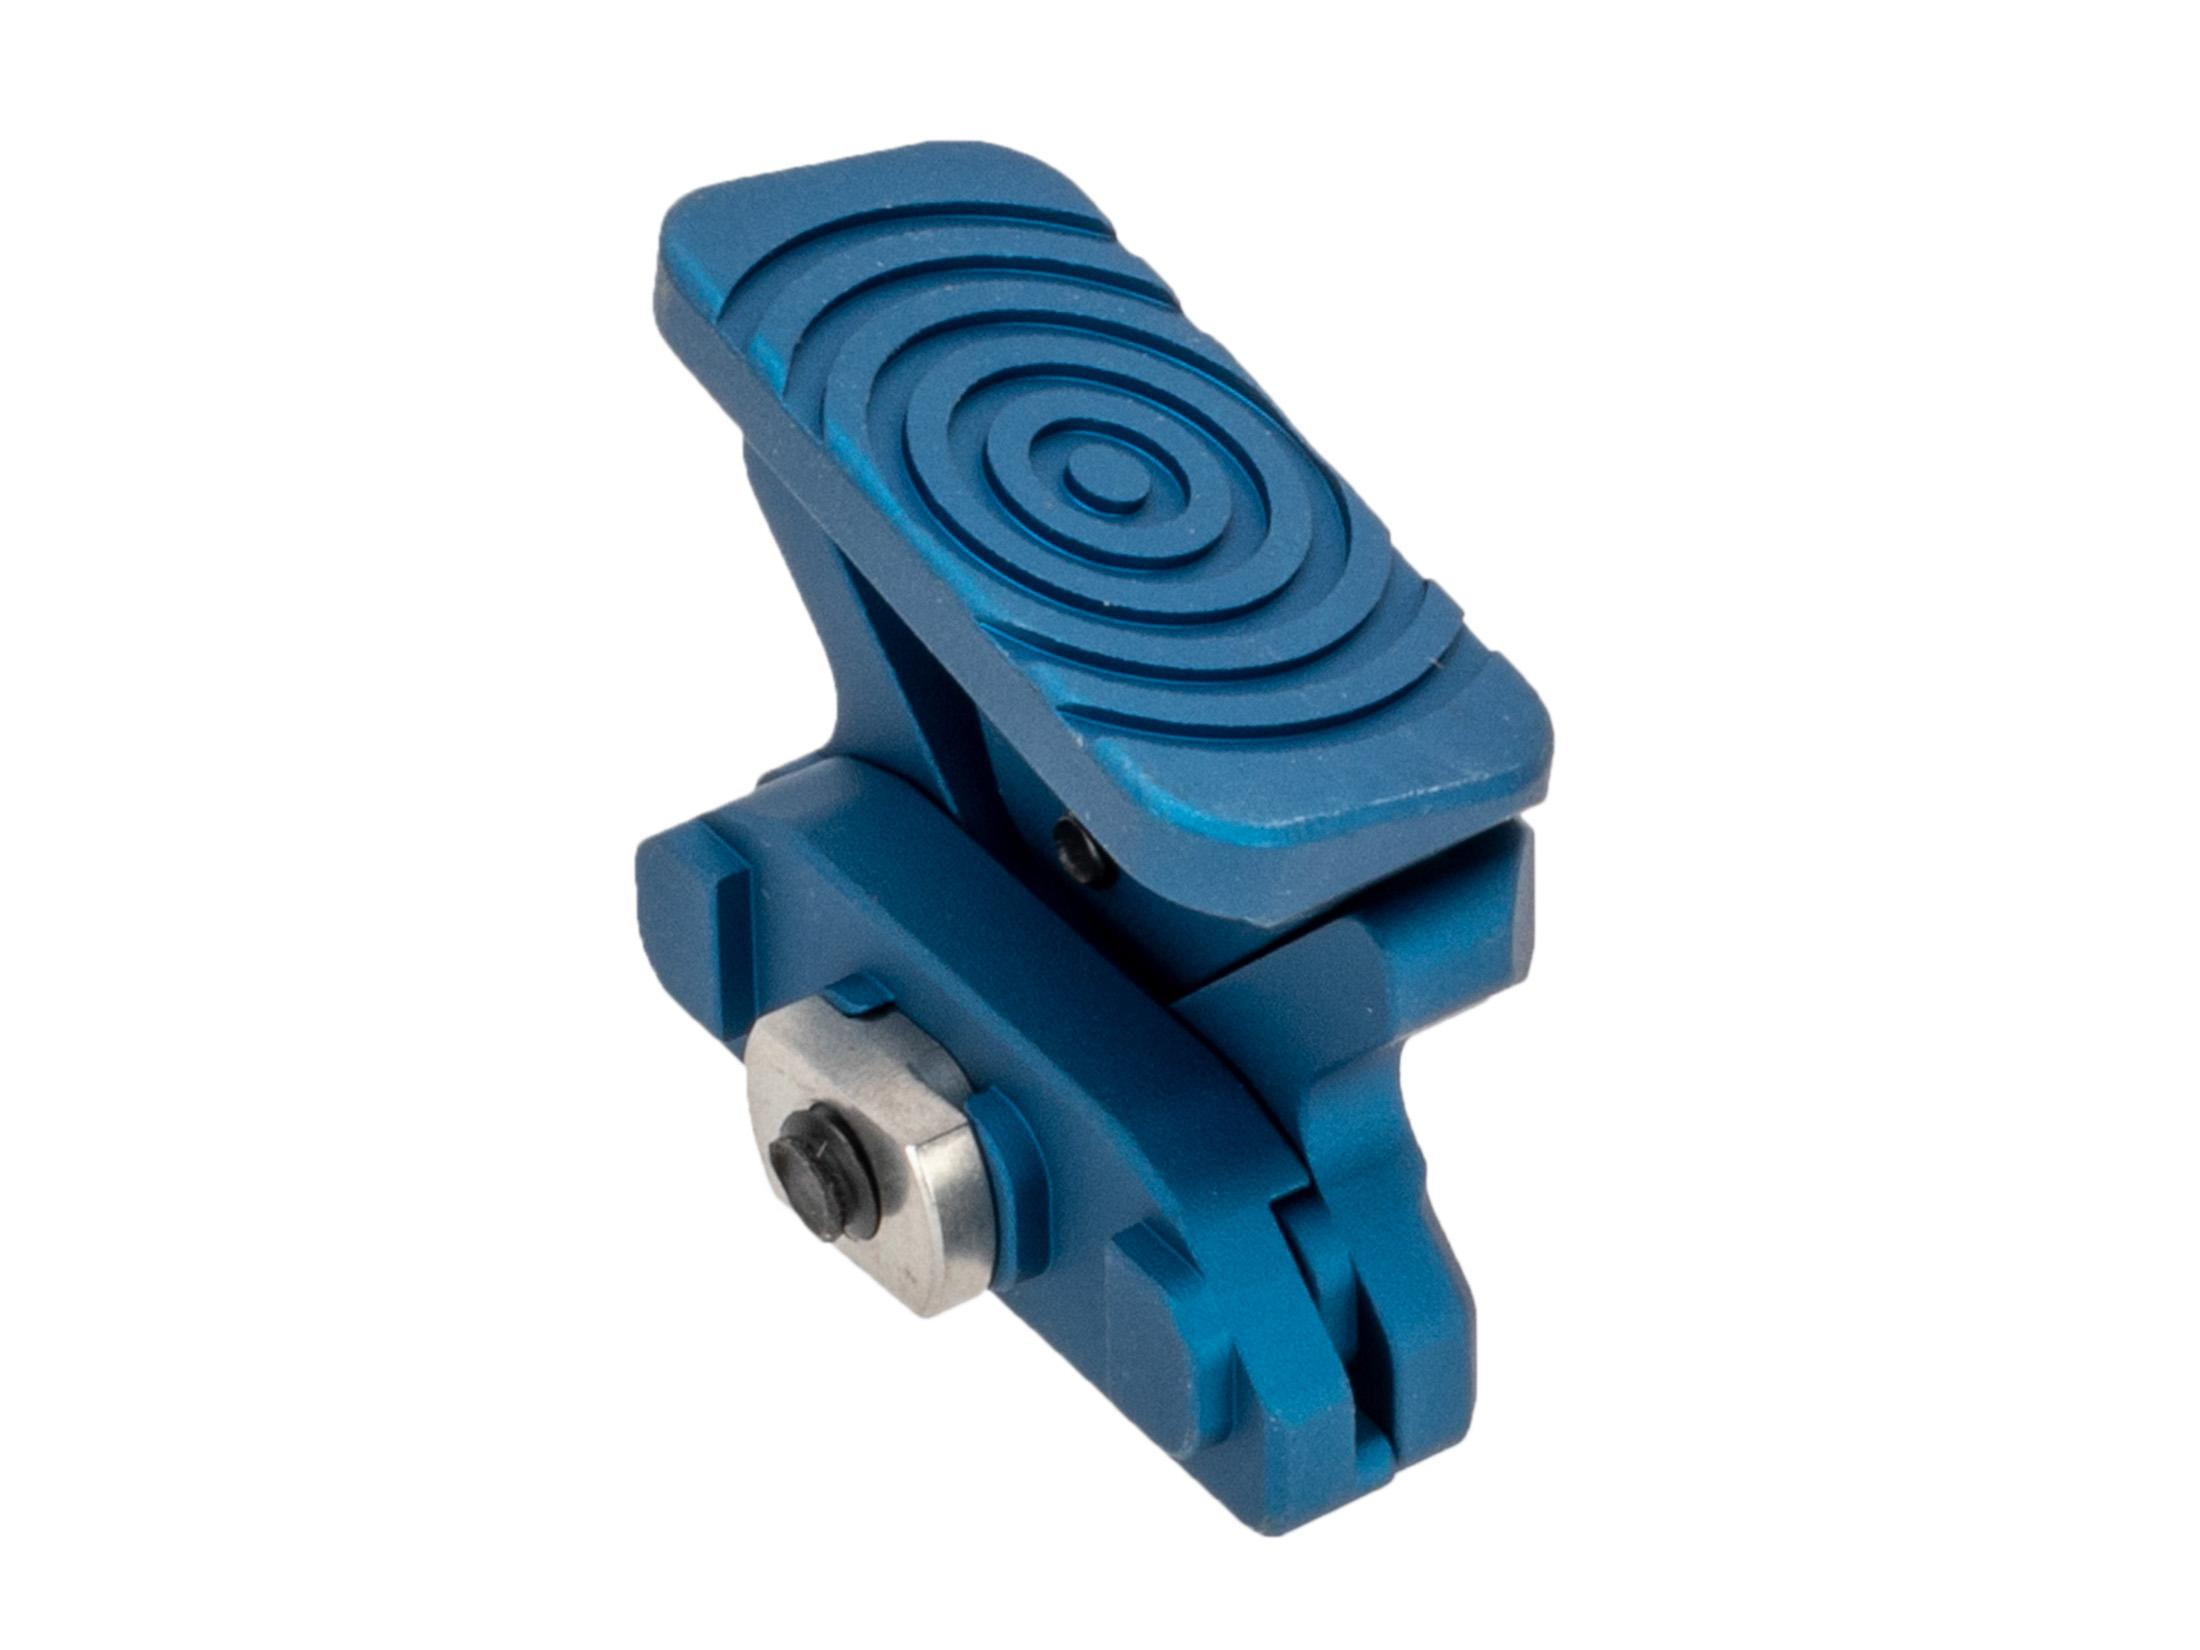 Leapers UTG M-LOK Angled Index Mount - Blue